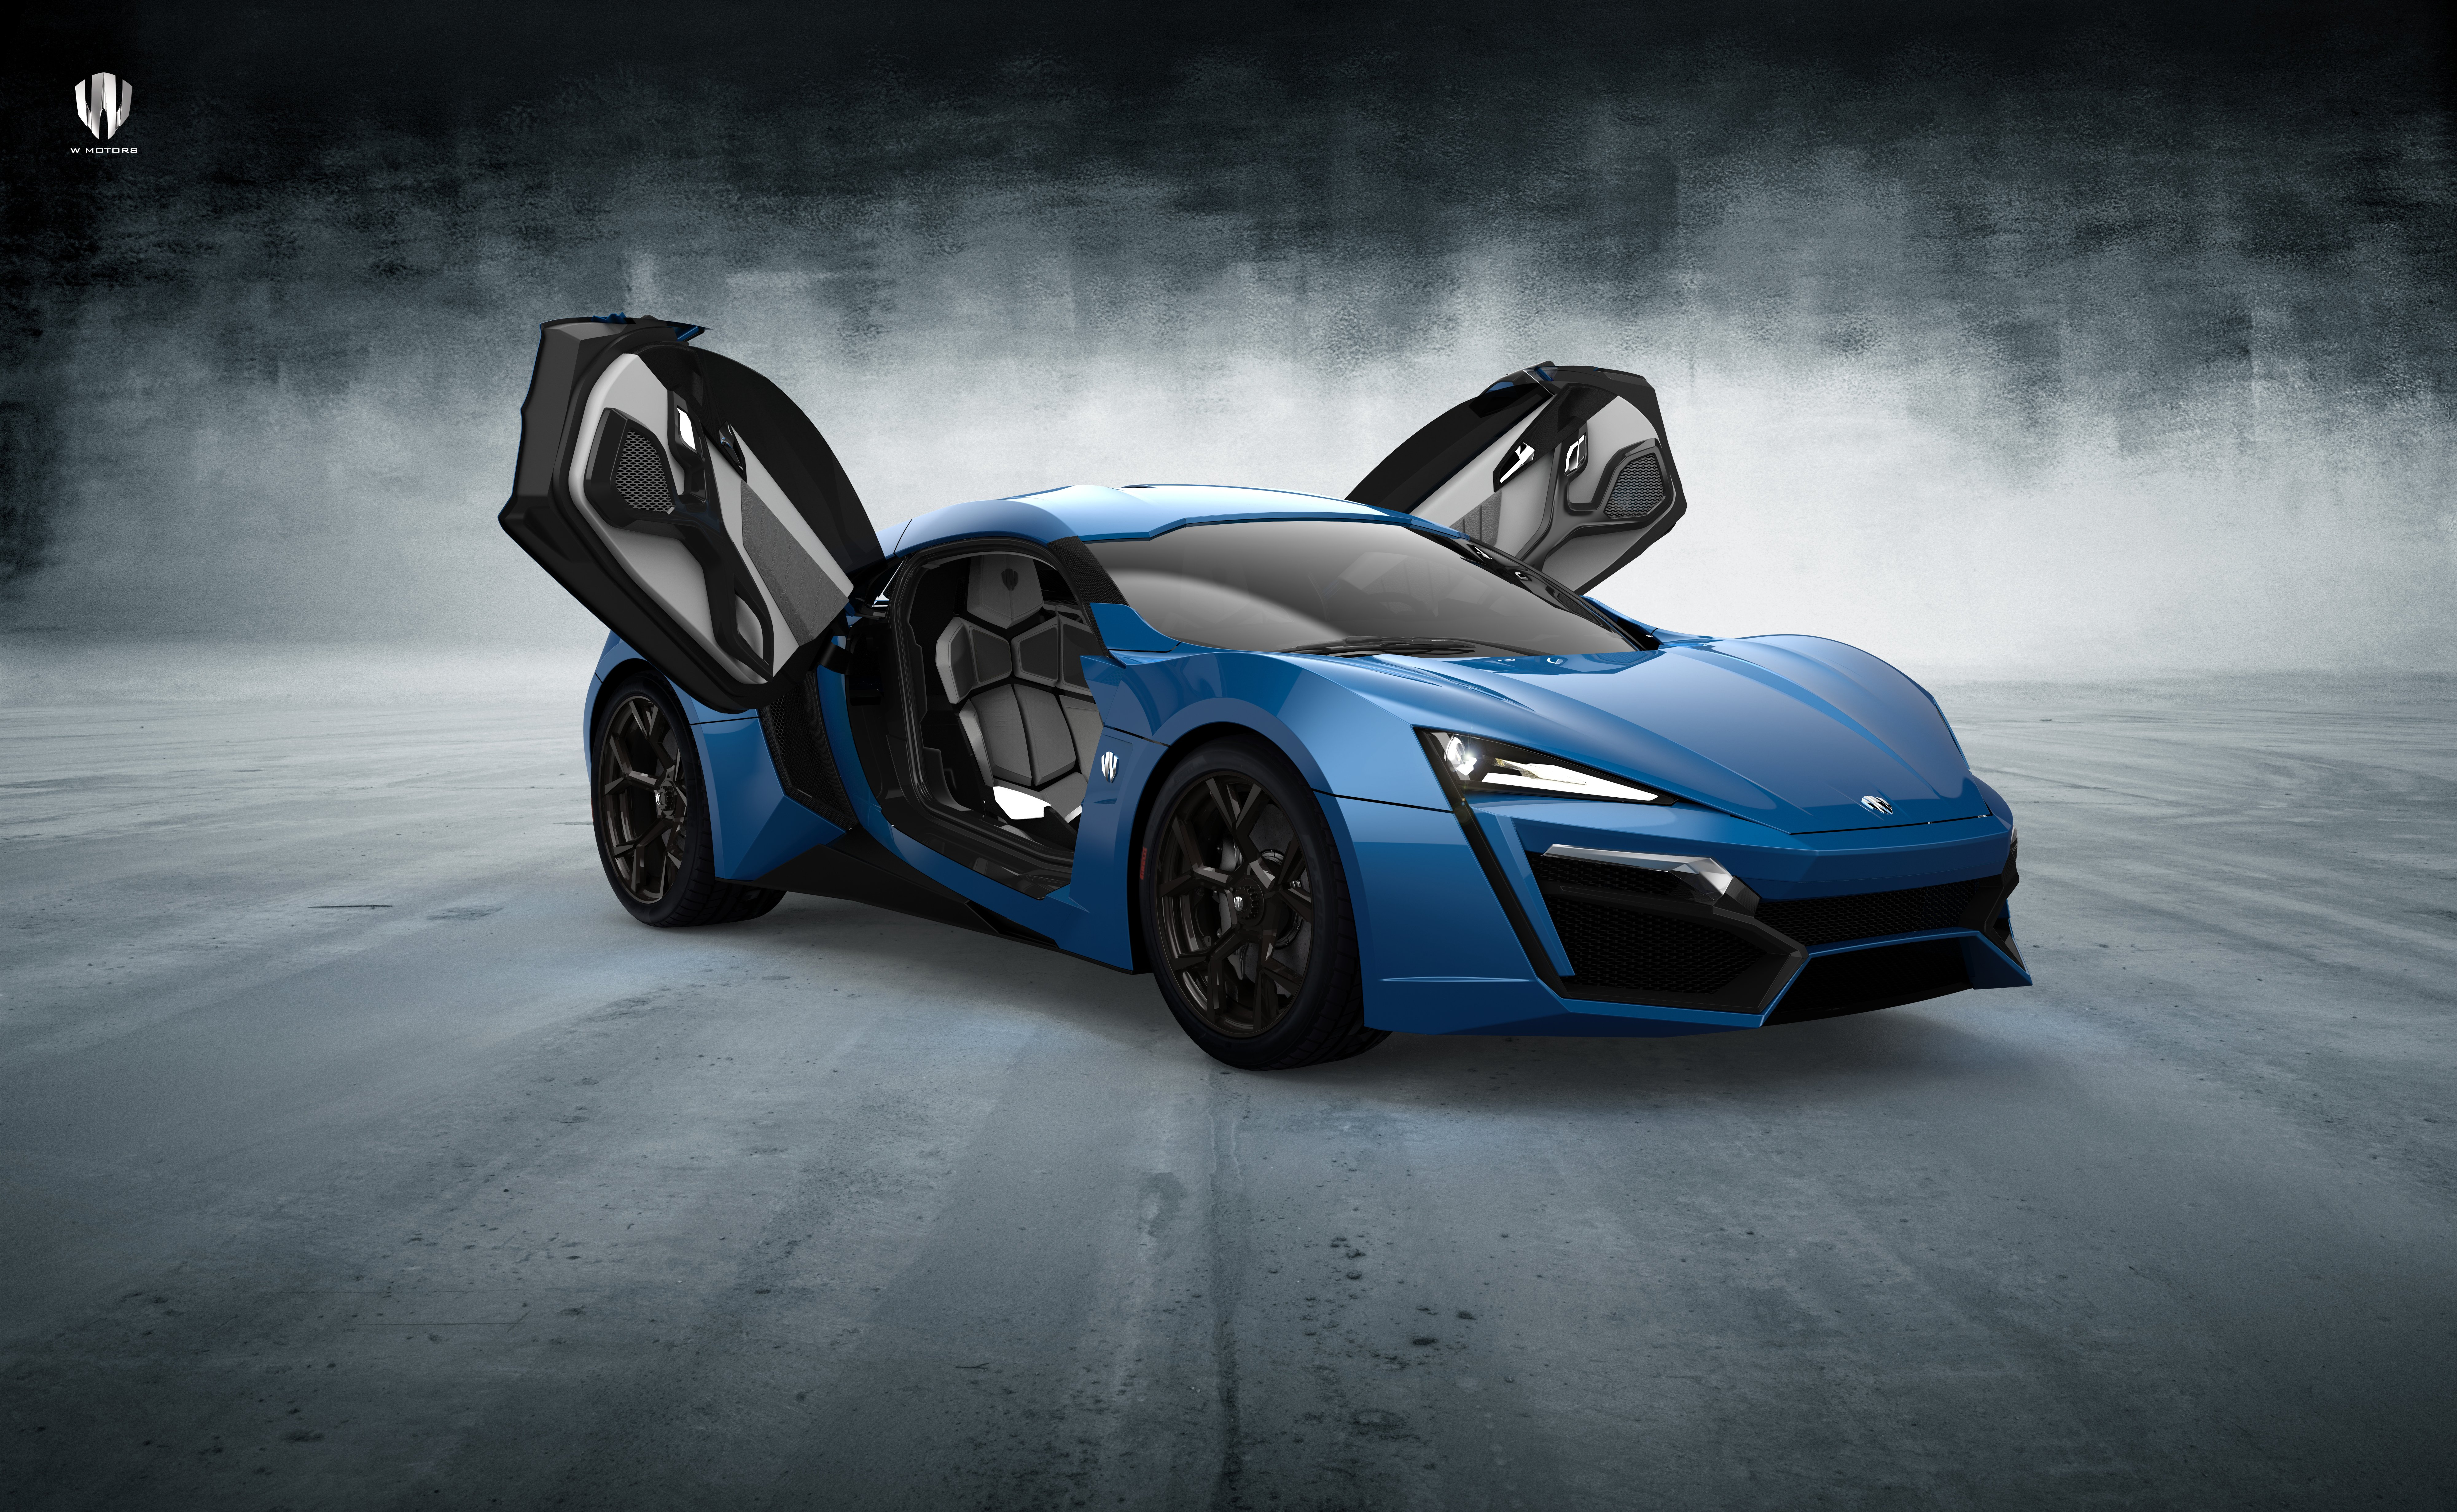 Lykan Hypersport 8k Ultra HD Wallpaper and Background 8000x4923